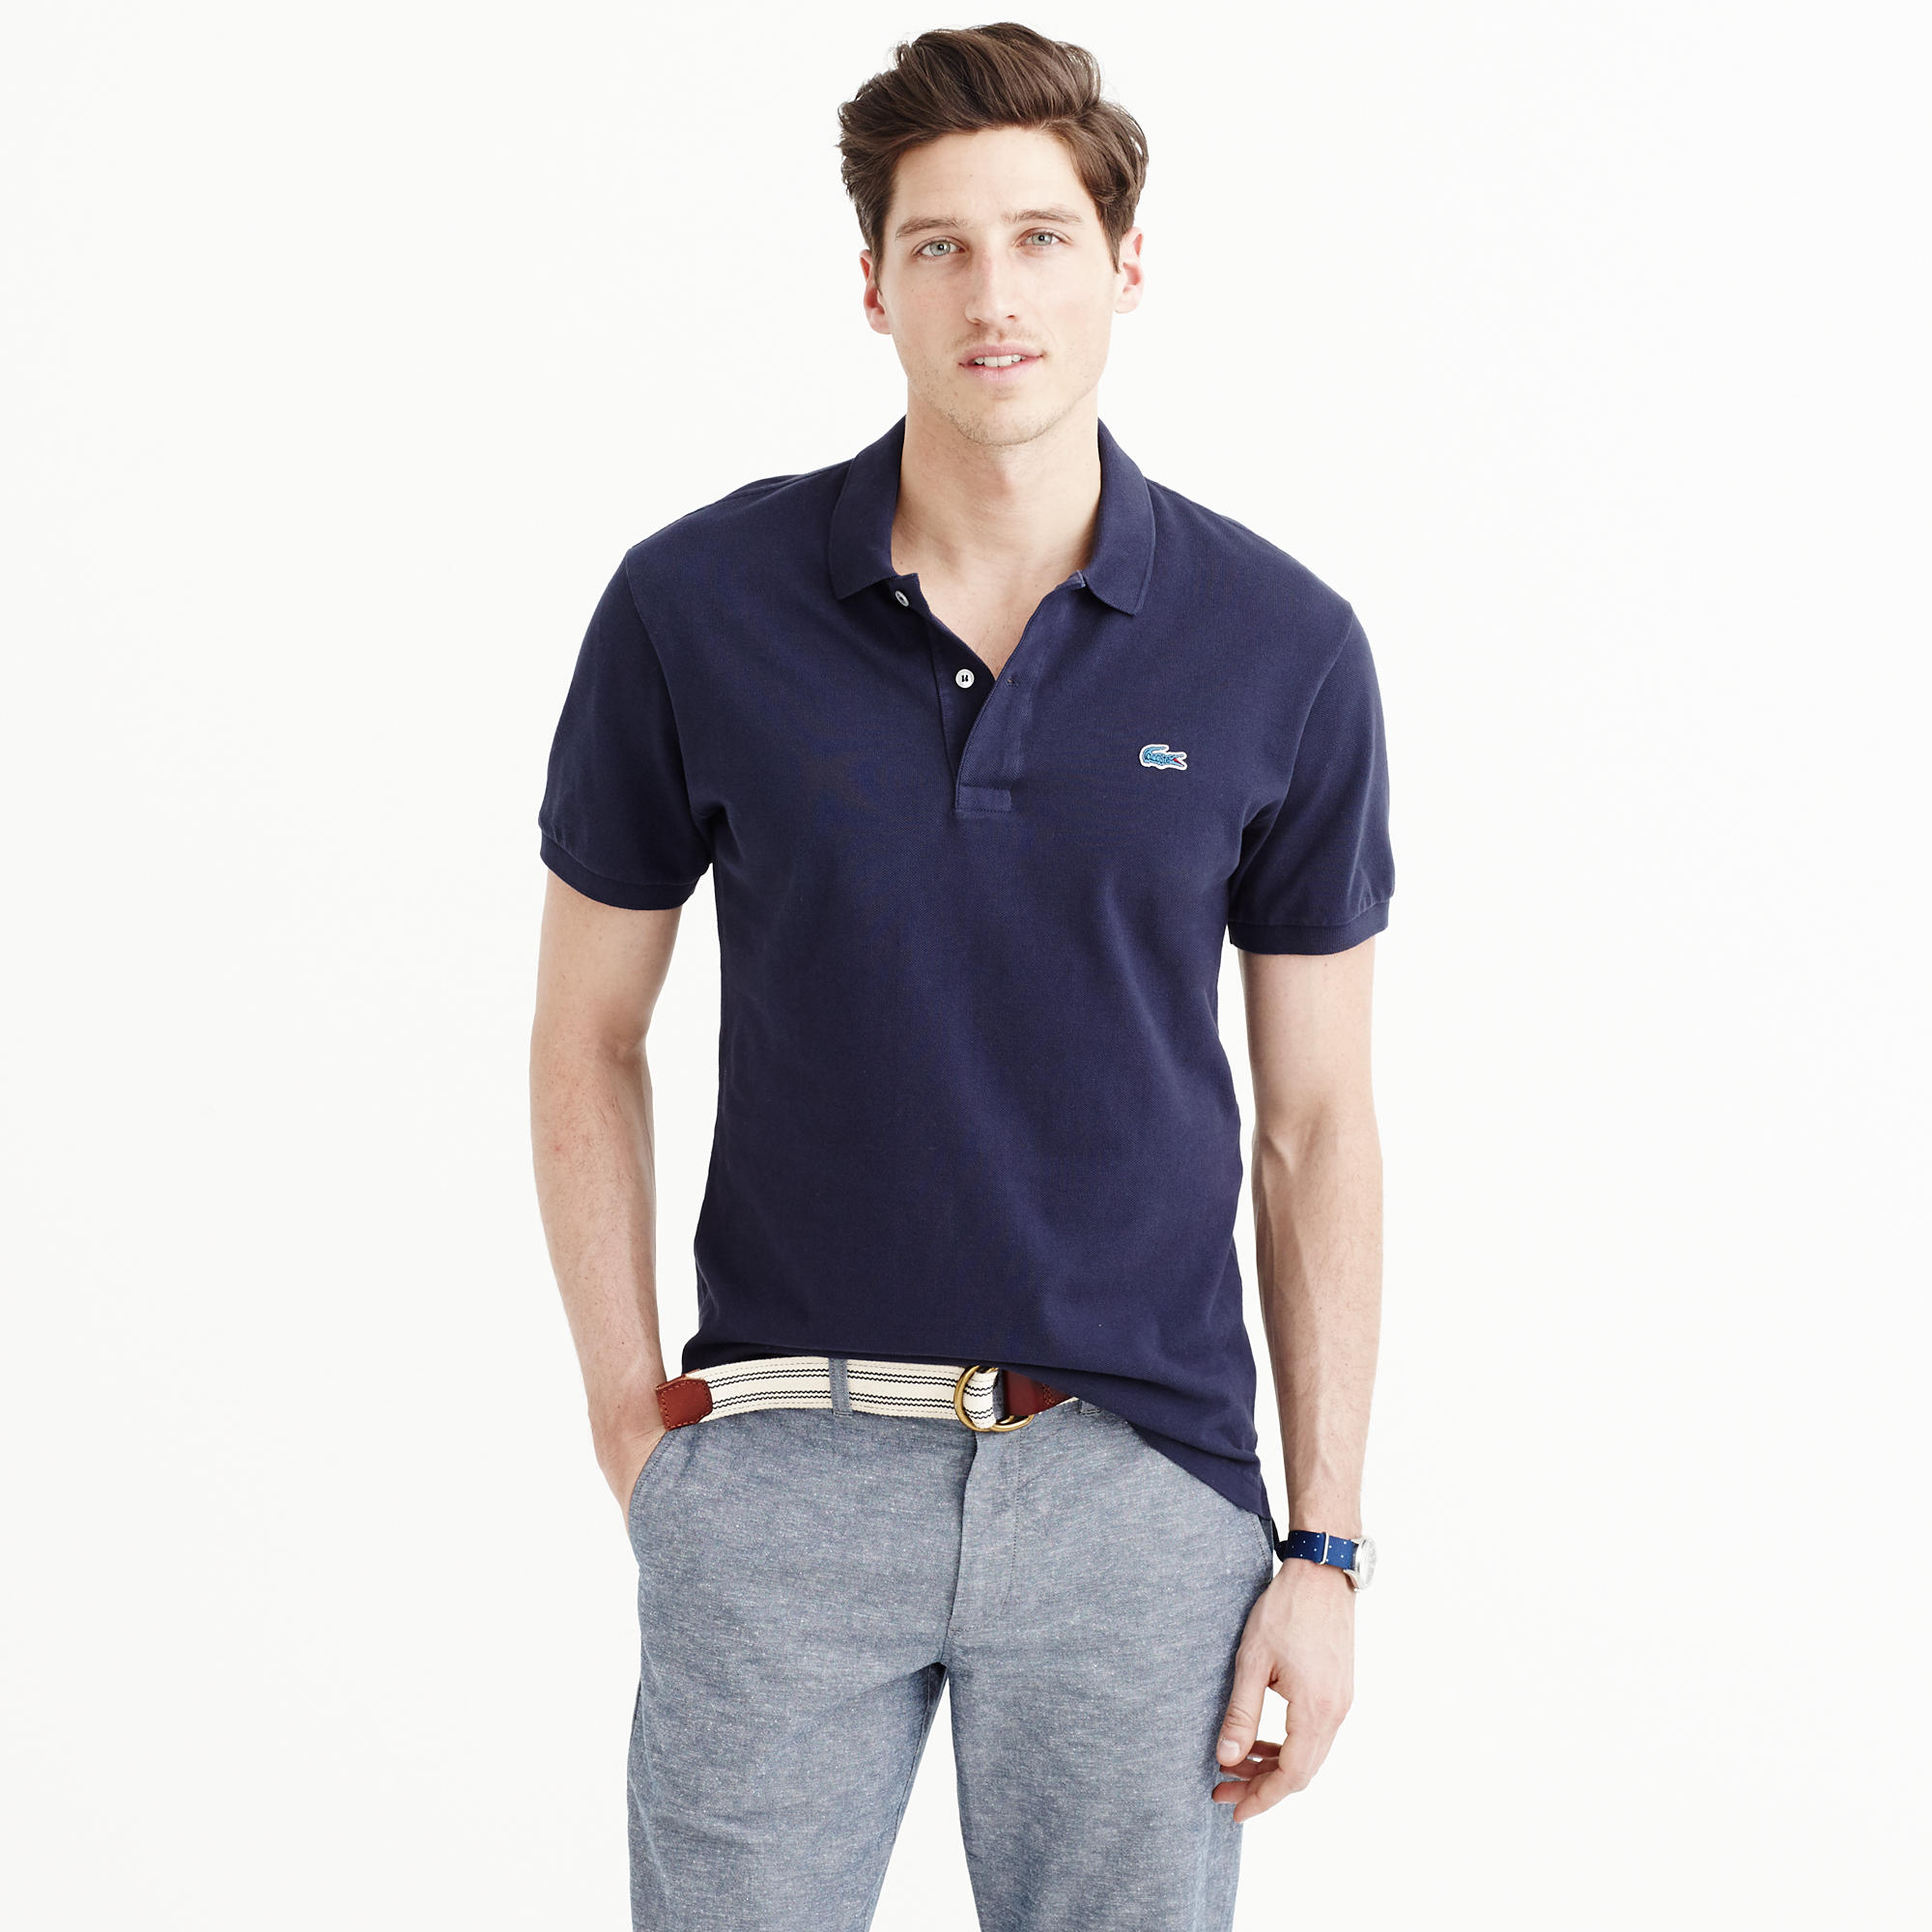 4d6a06c5e3ee Are Polo Shirts In Style 2015 - Cotswold Hire